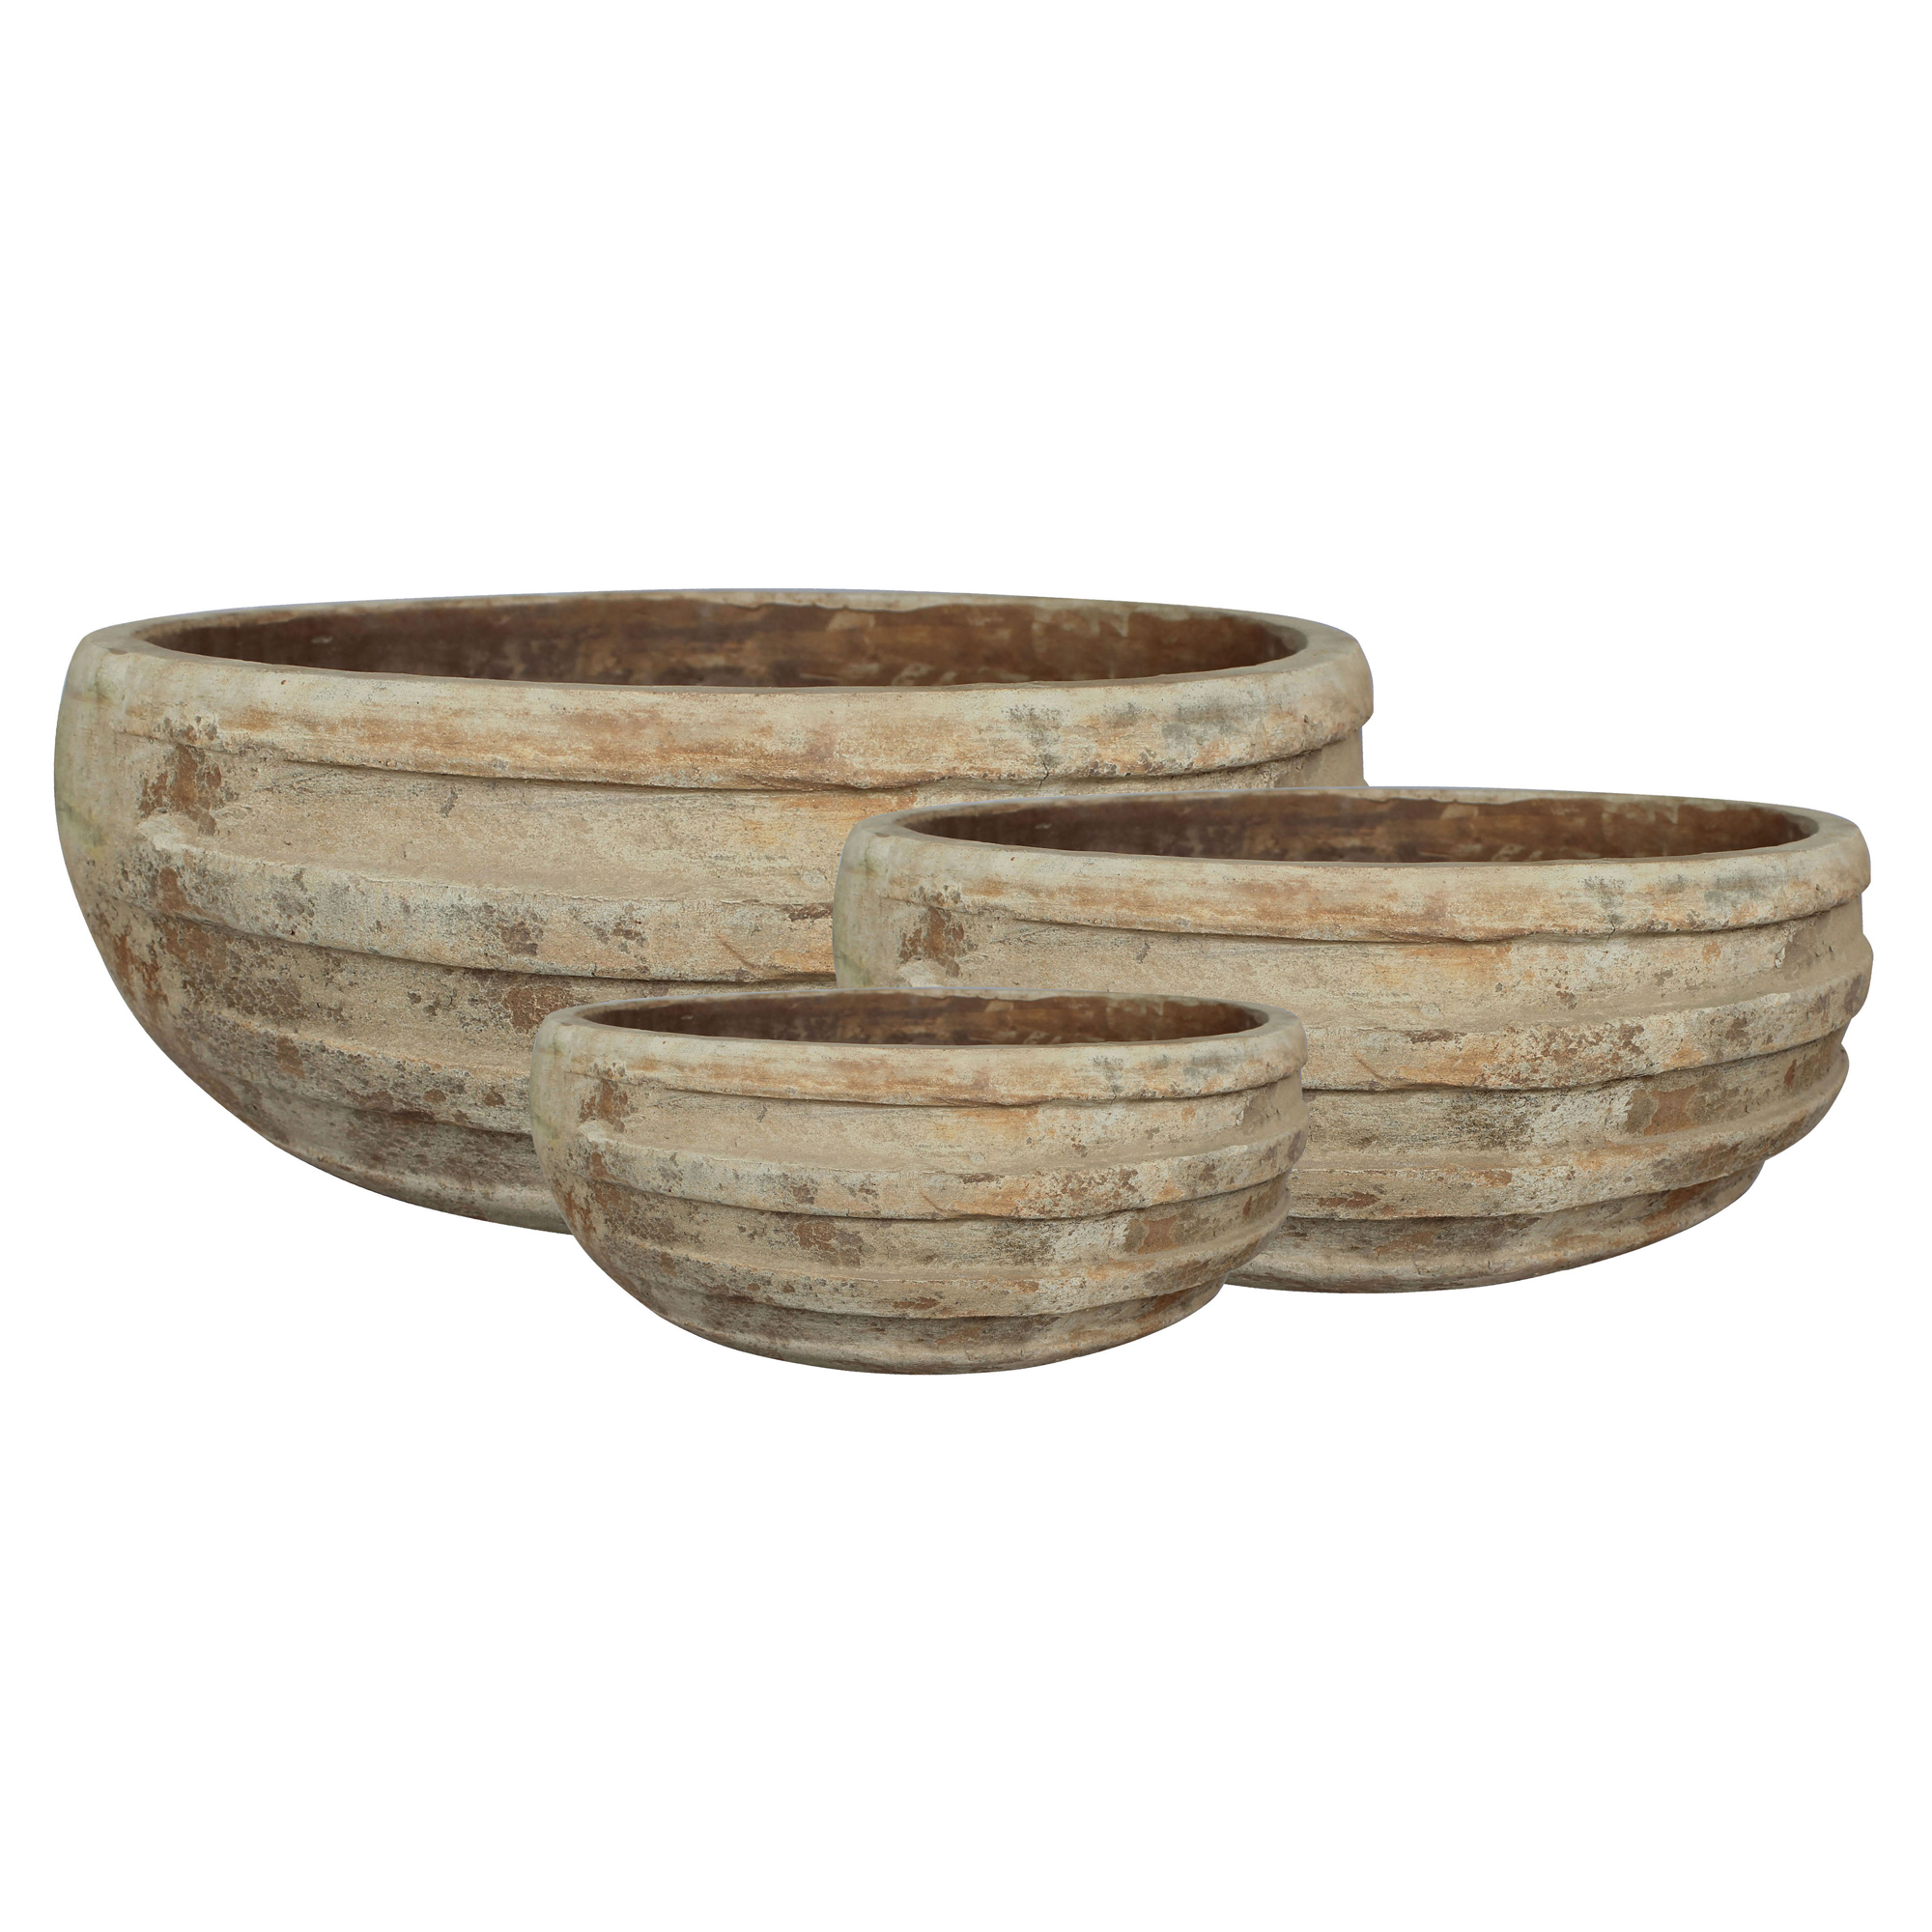 bowls pot rustic and shallow home terracotta bgreen planters indoor lacepot planter for side plants low